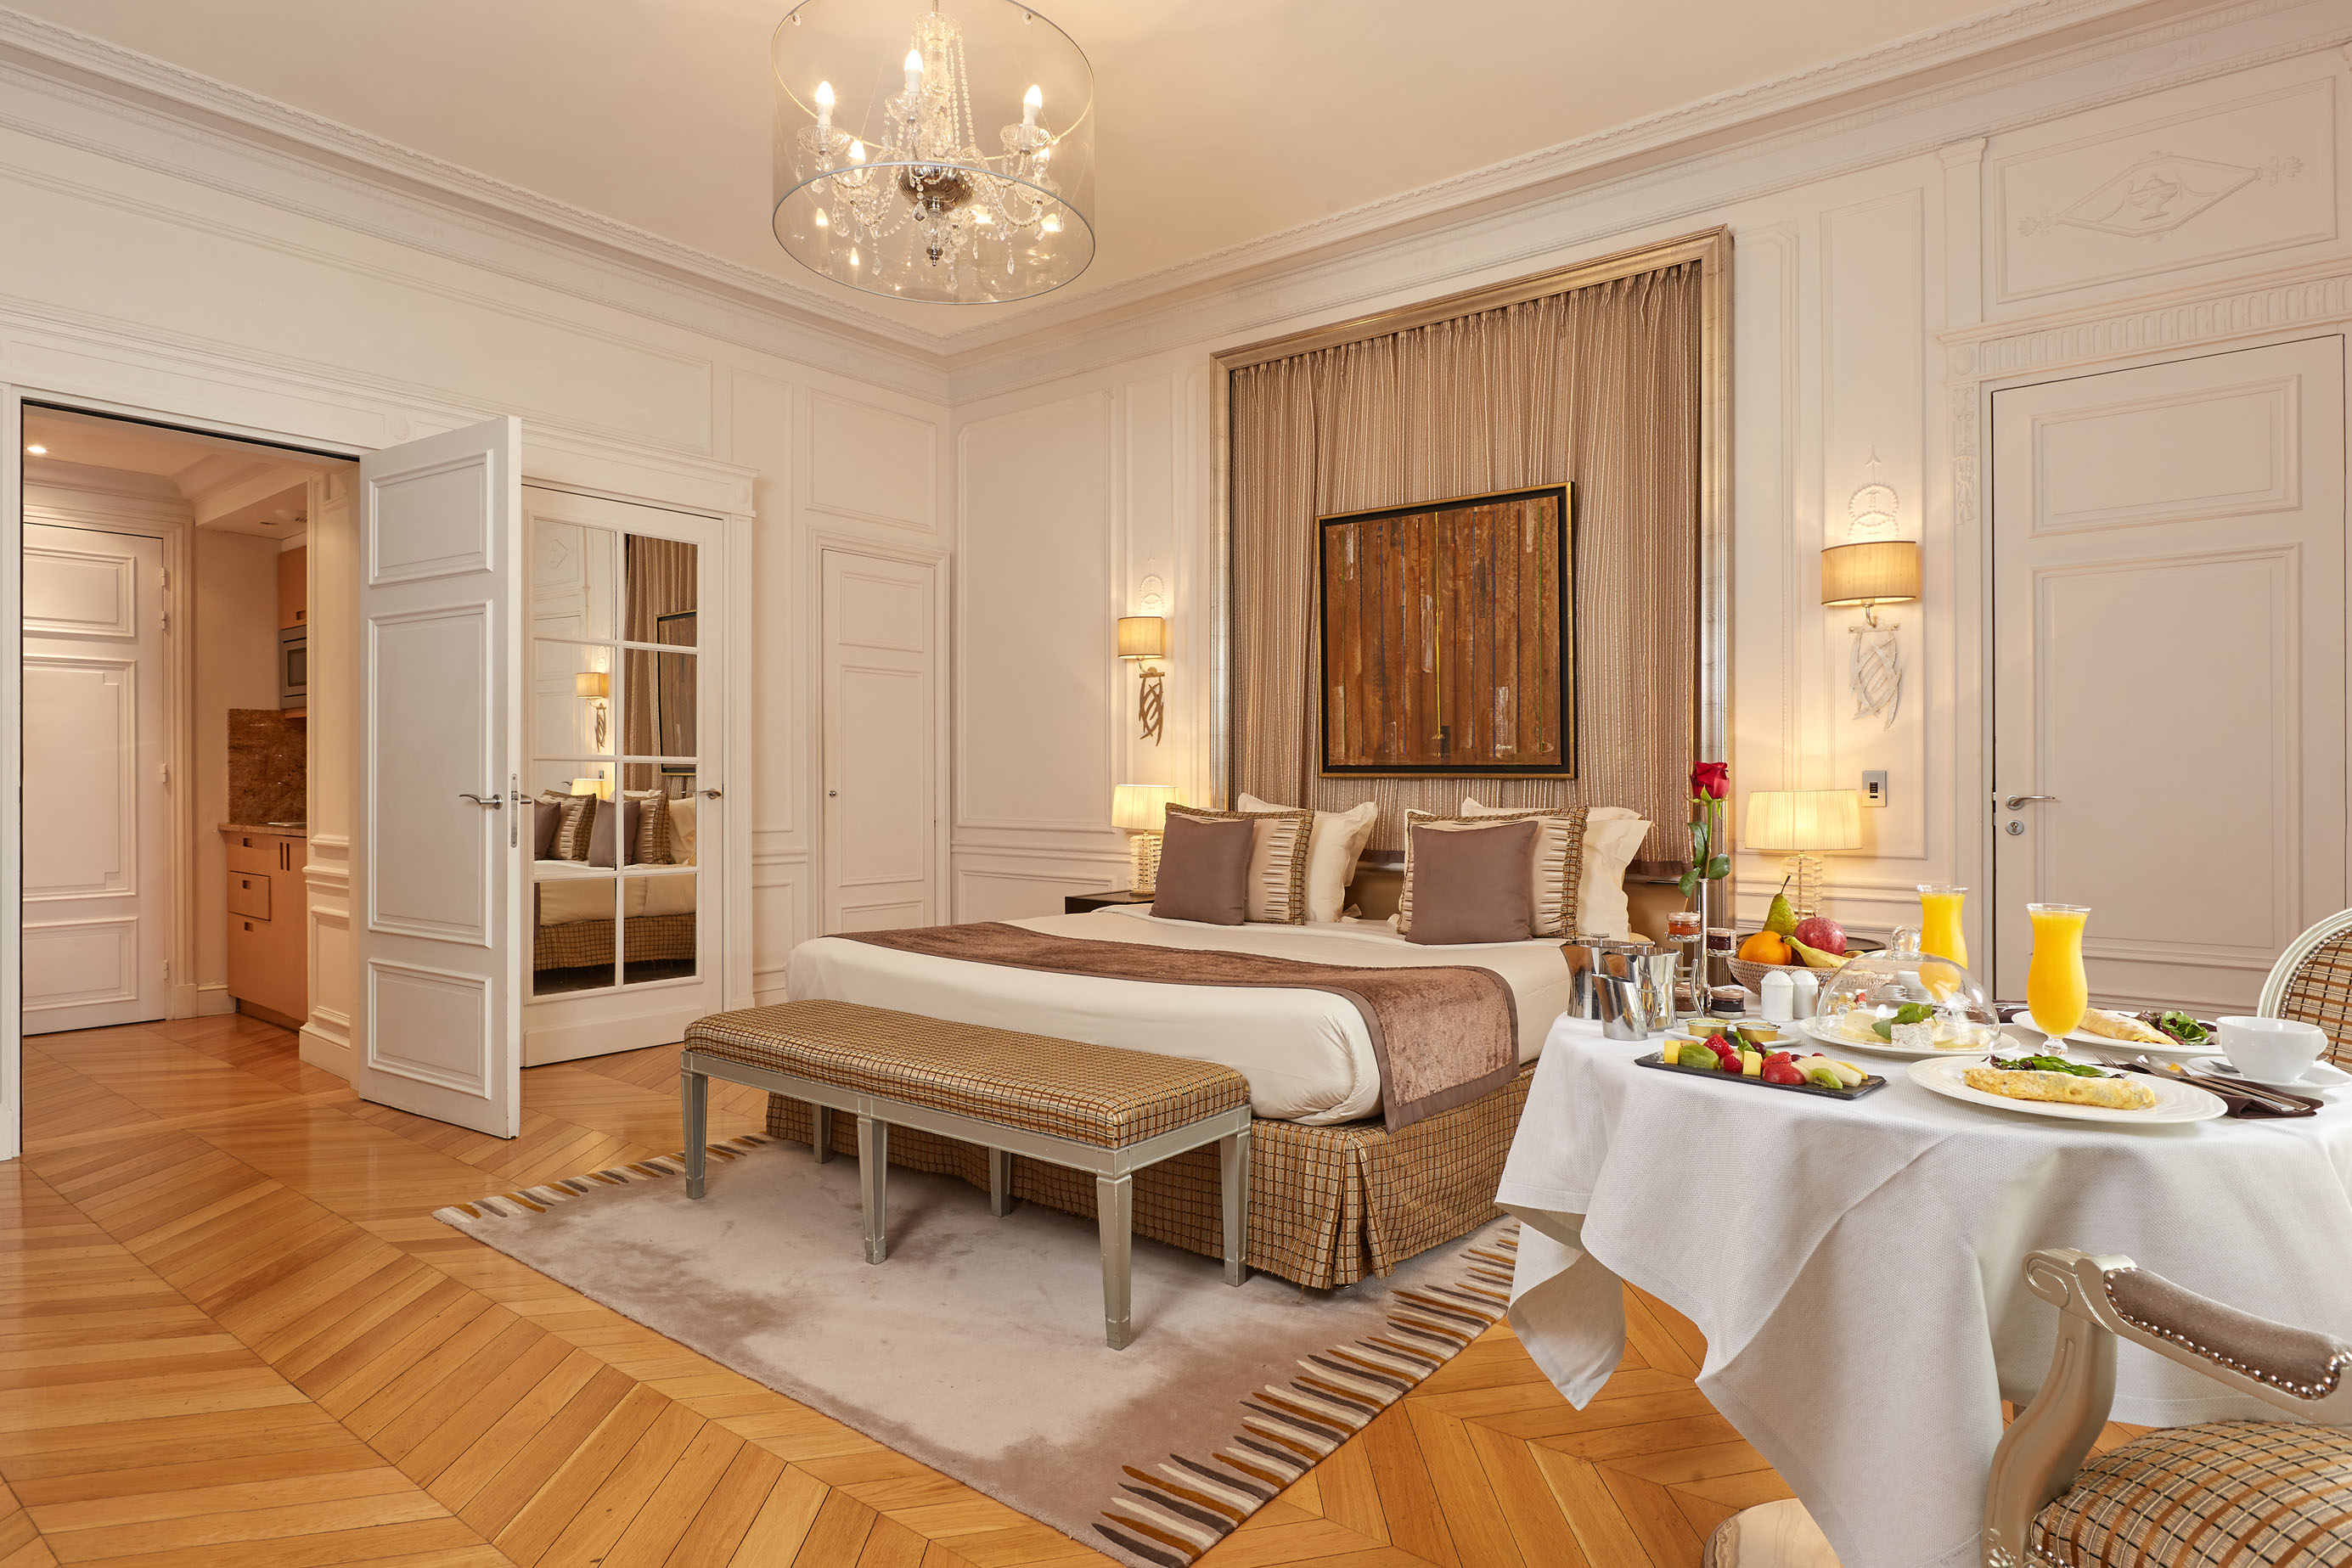 260/Rooms/Grand deluxe/Room_Grand_Deluxe_1_CMajestic_Hotel-Spa.jpg